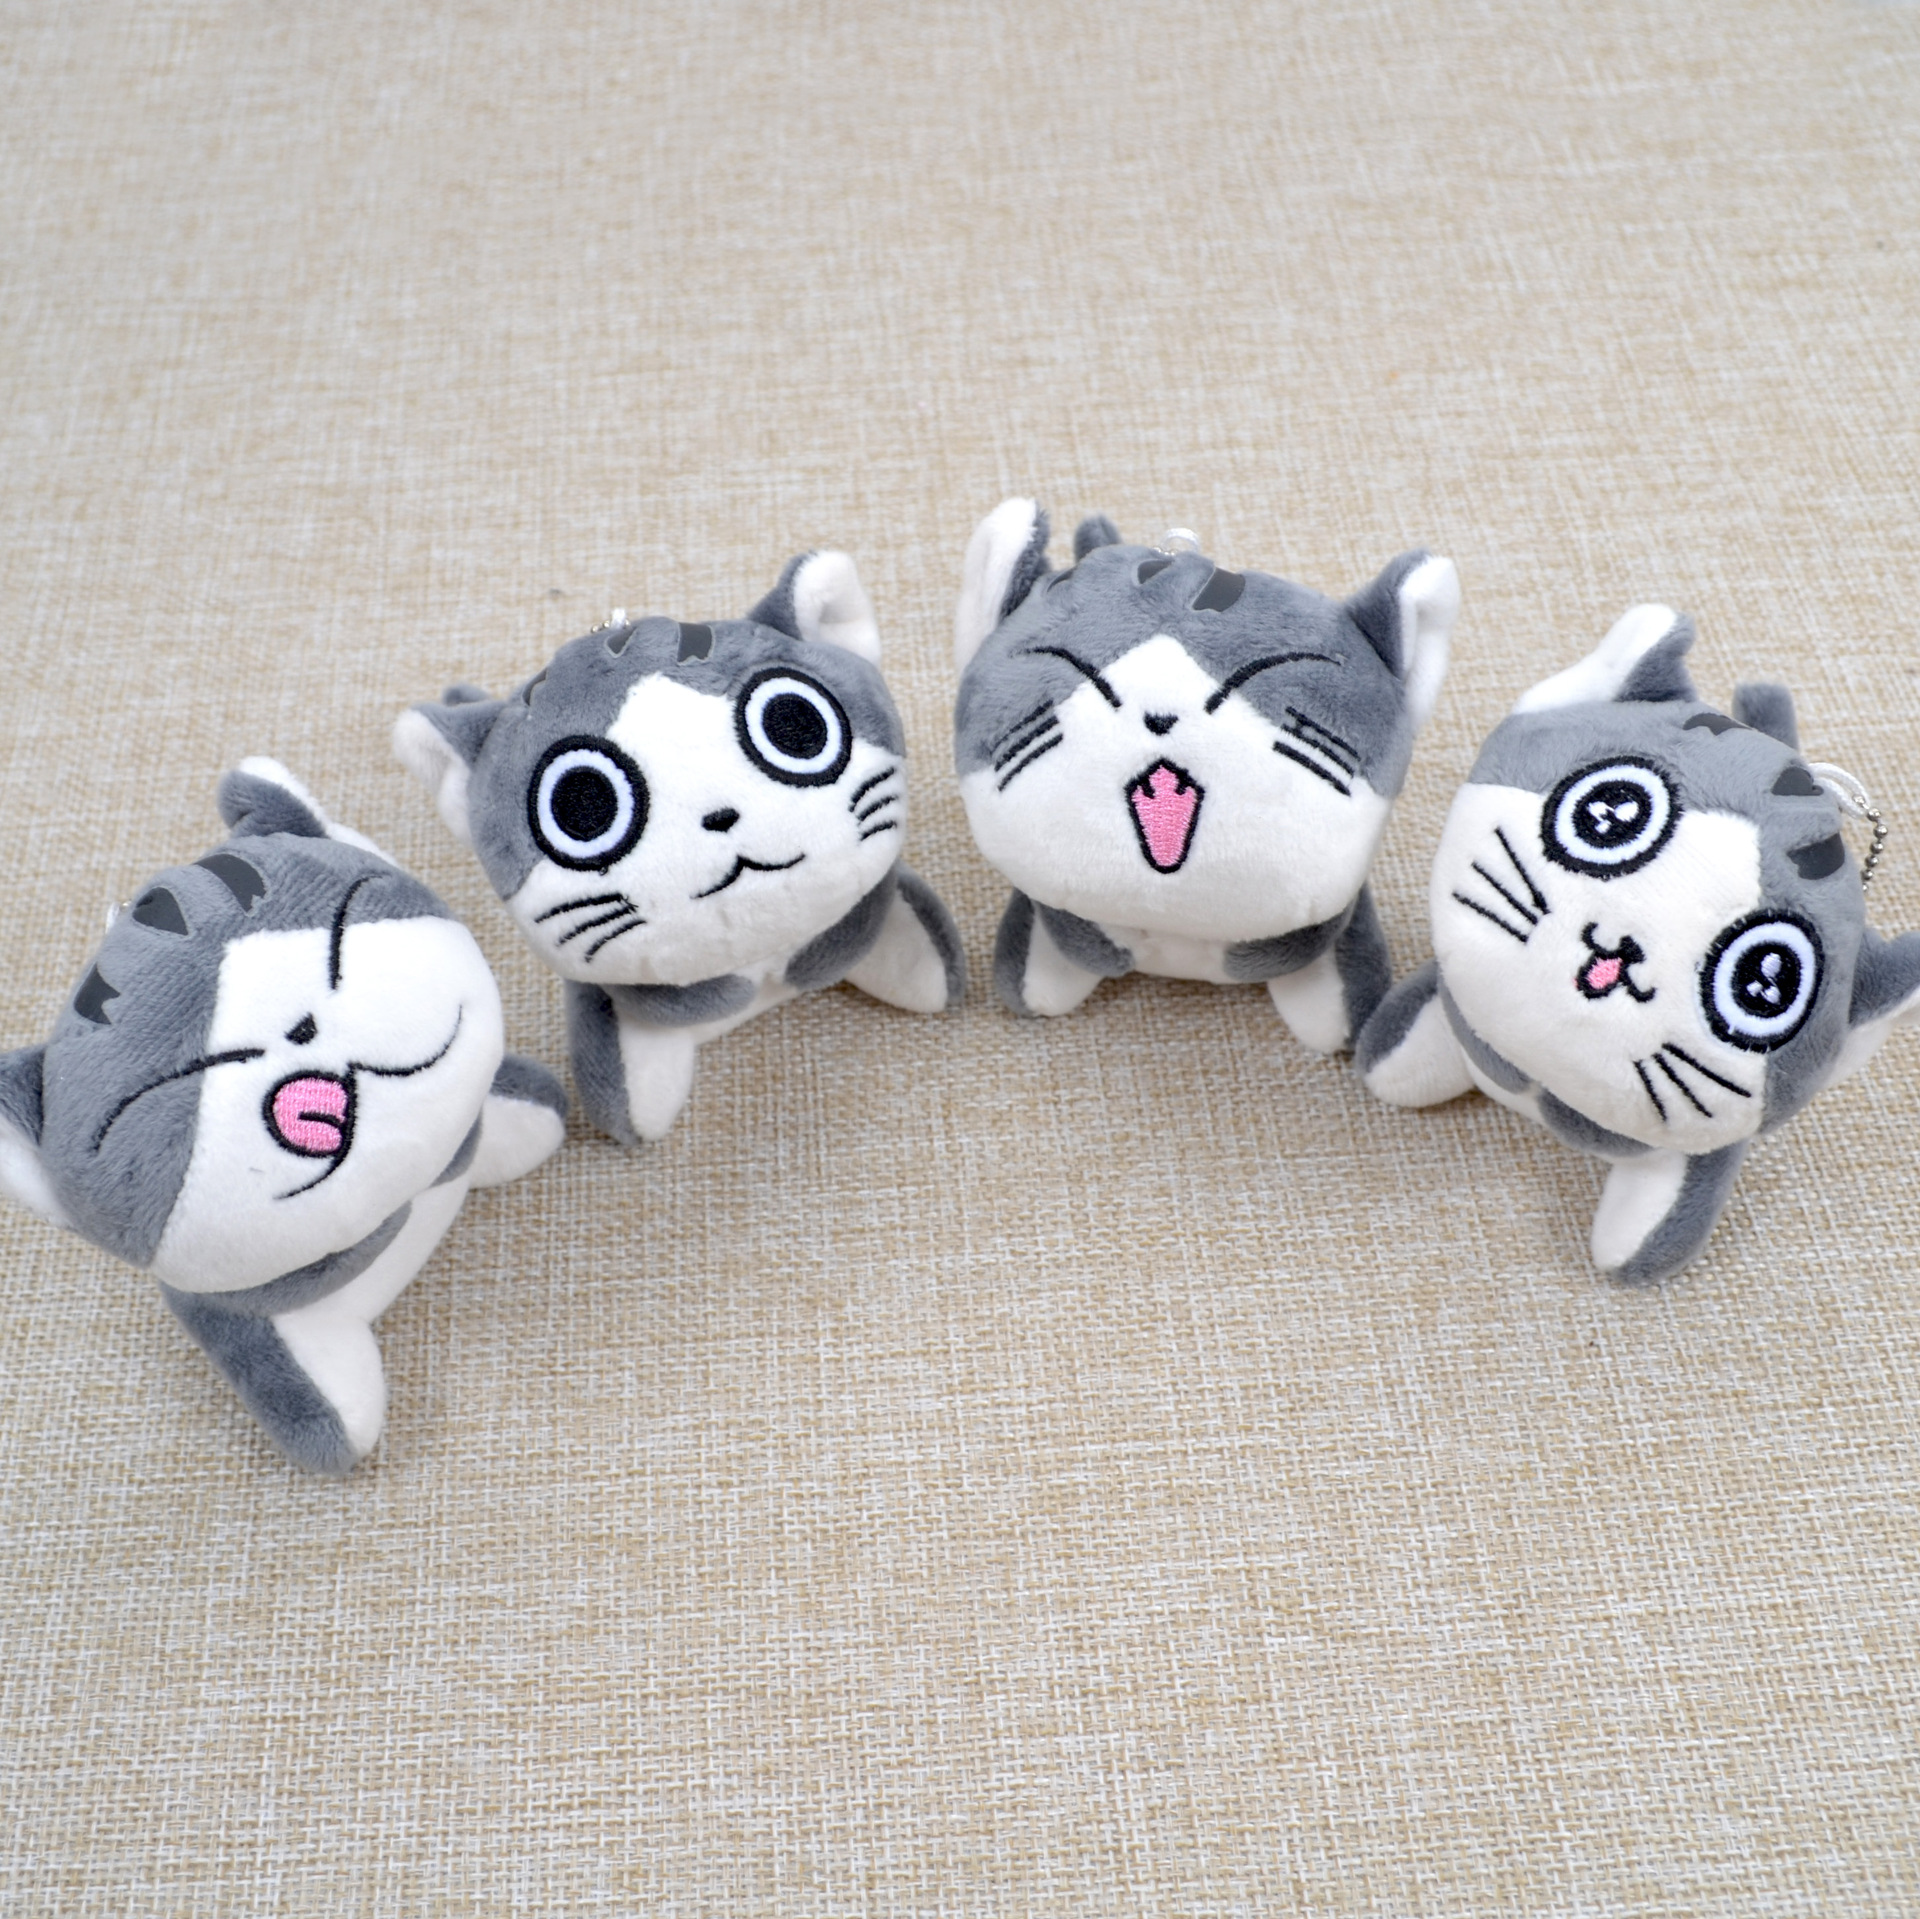 Kawaii Grey Sitting 9CM CAT Plush Stuffed Toys , Bouquet Gift Soft Plush Cat Doll , CAT Key Chain Plush TOY Flower Cat Doll Gift carnival watches men luxury top brand new fashion men s big dial designer quartz watch male wristwatch relogio masculino relojes page 2